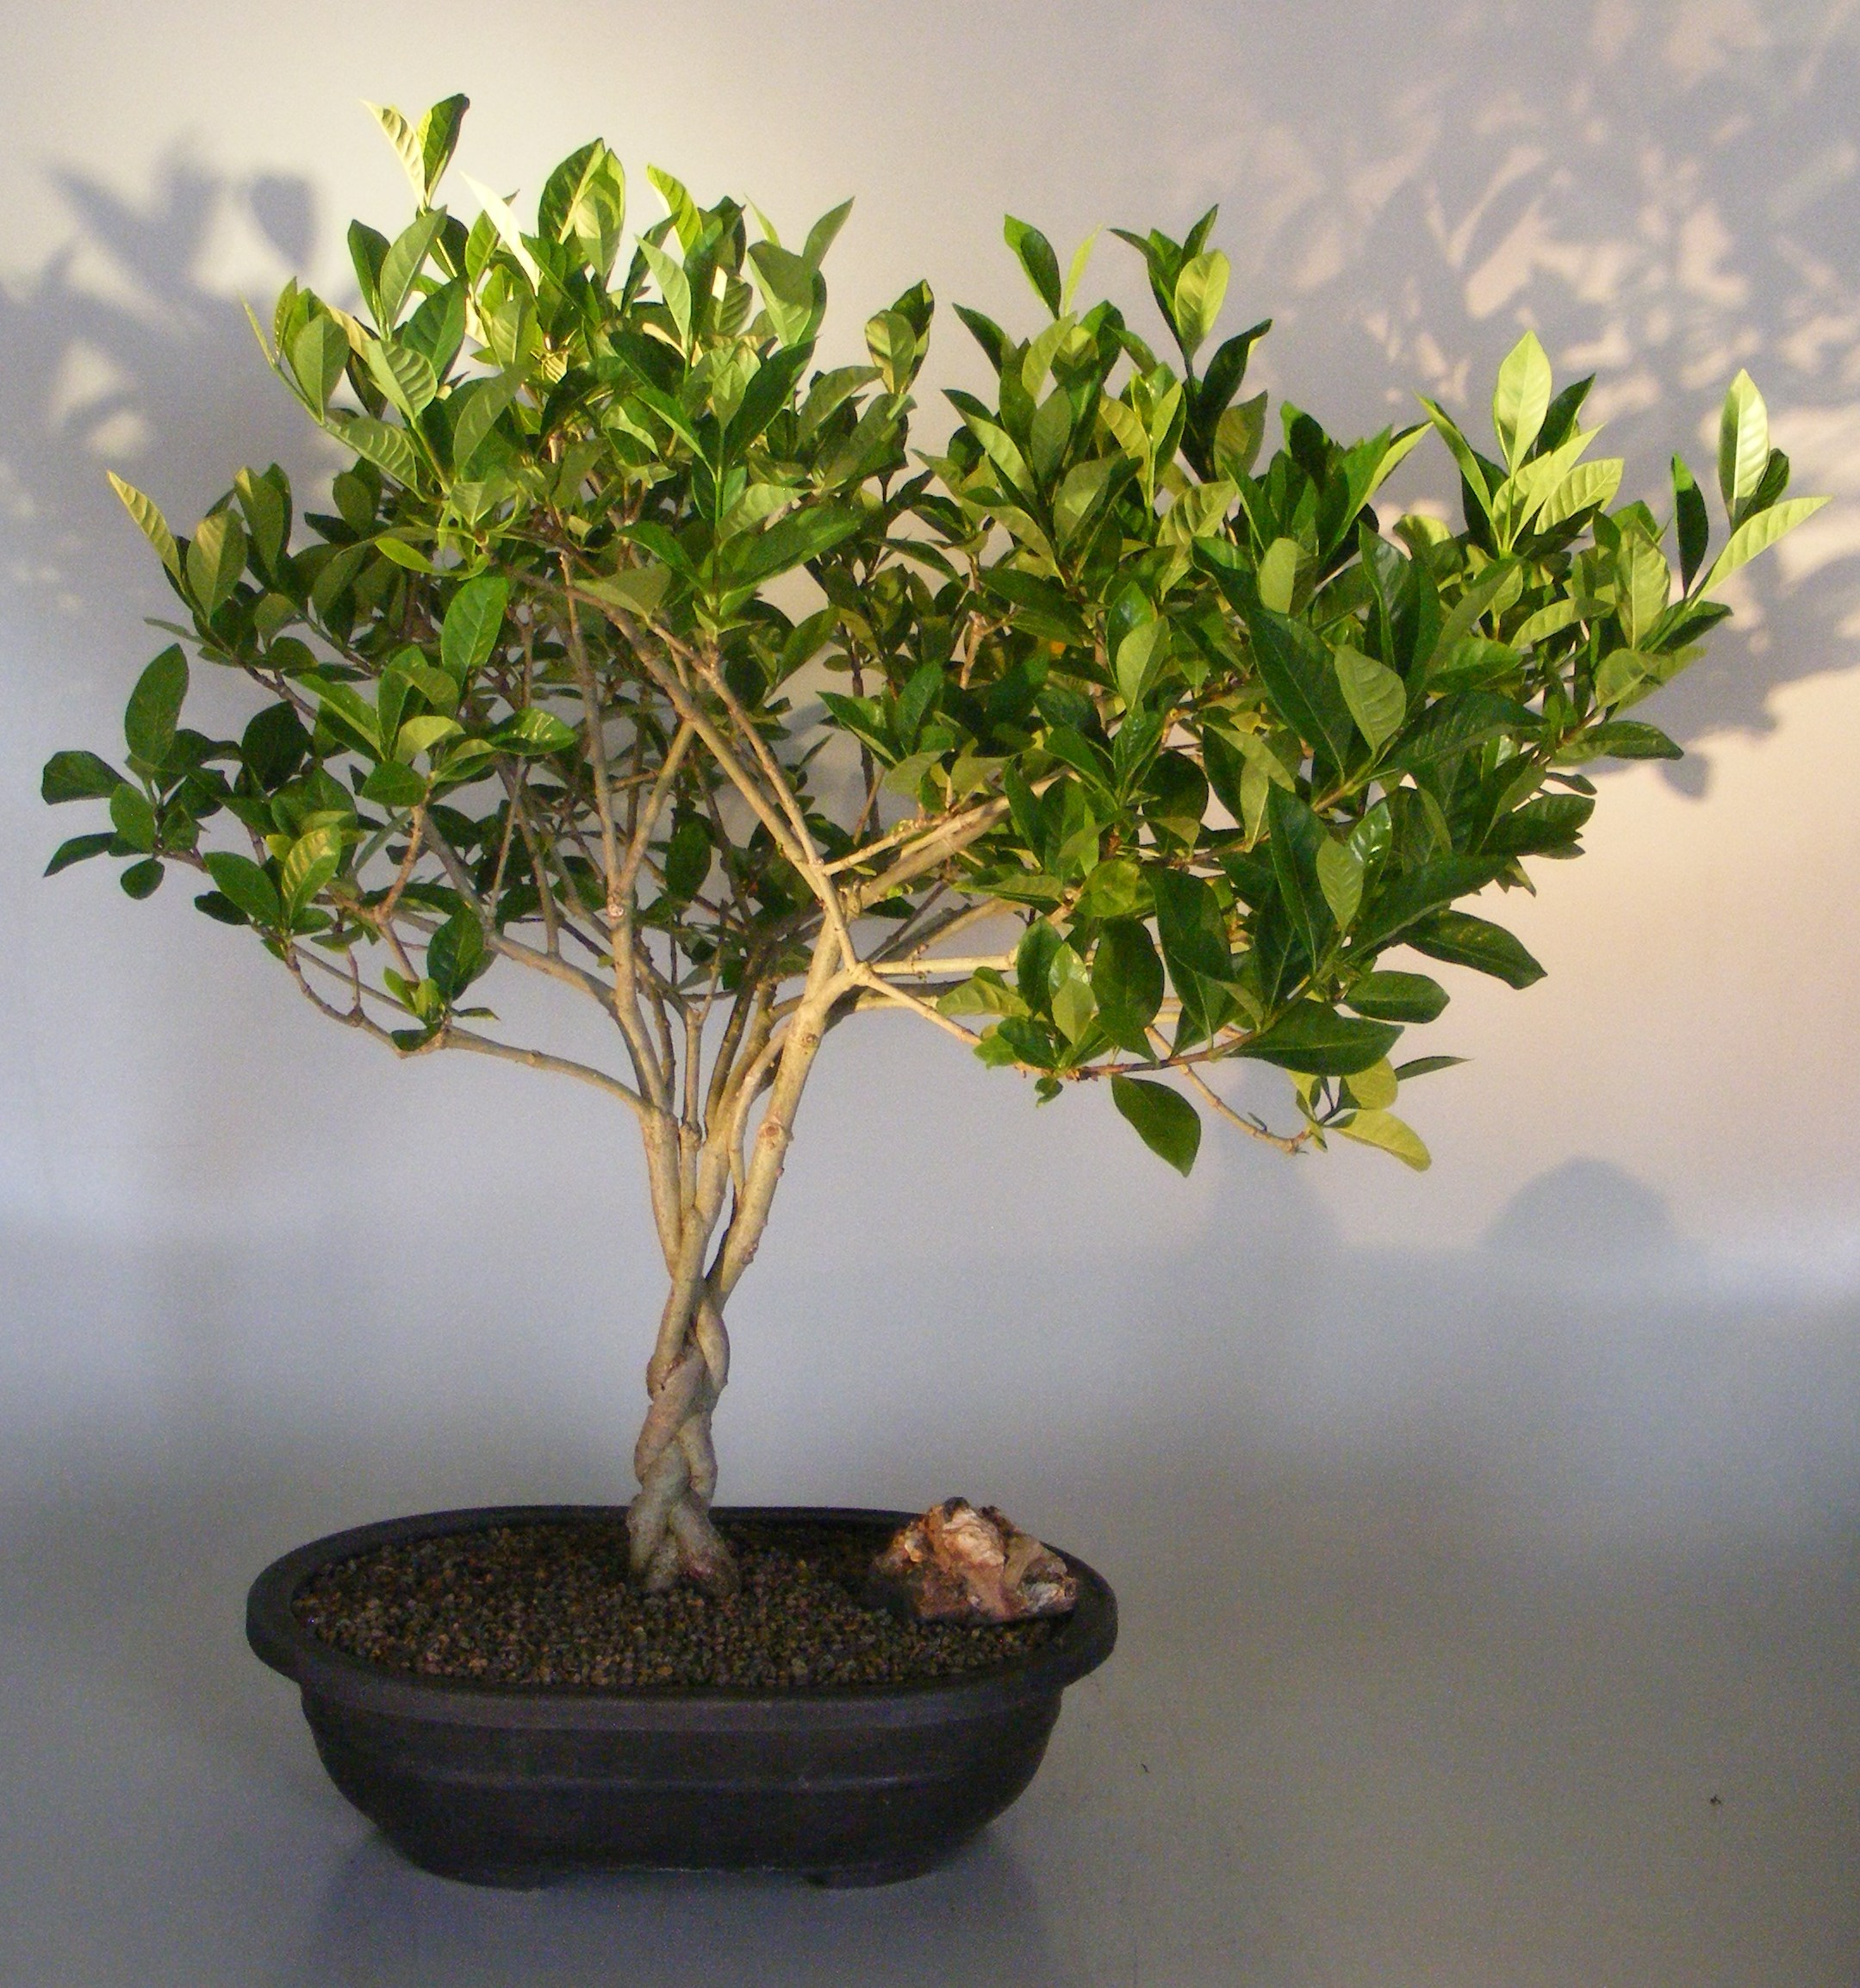 Flowering Gardenia Bonsai Treebraided Trunk Jasminoides Miami Supreme